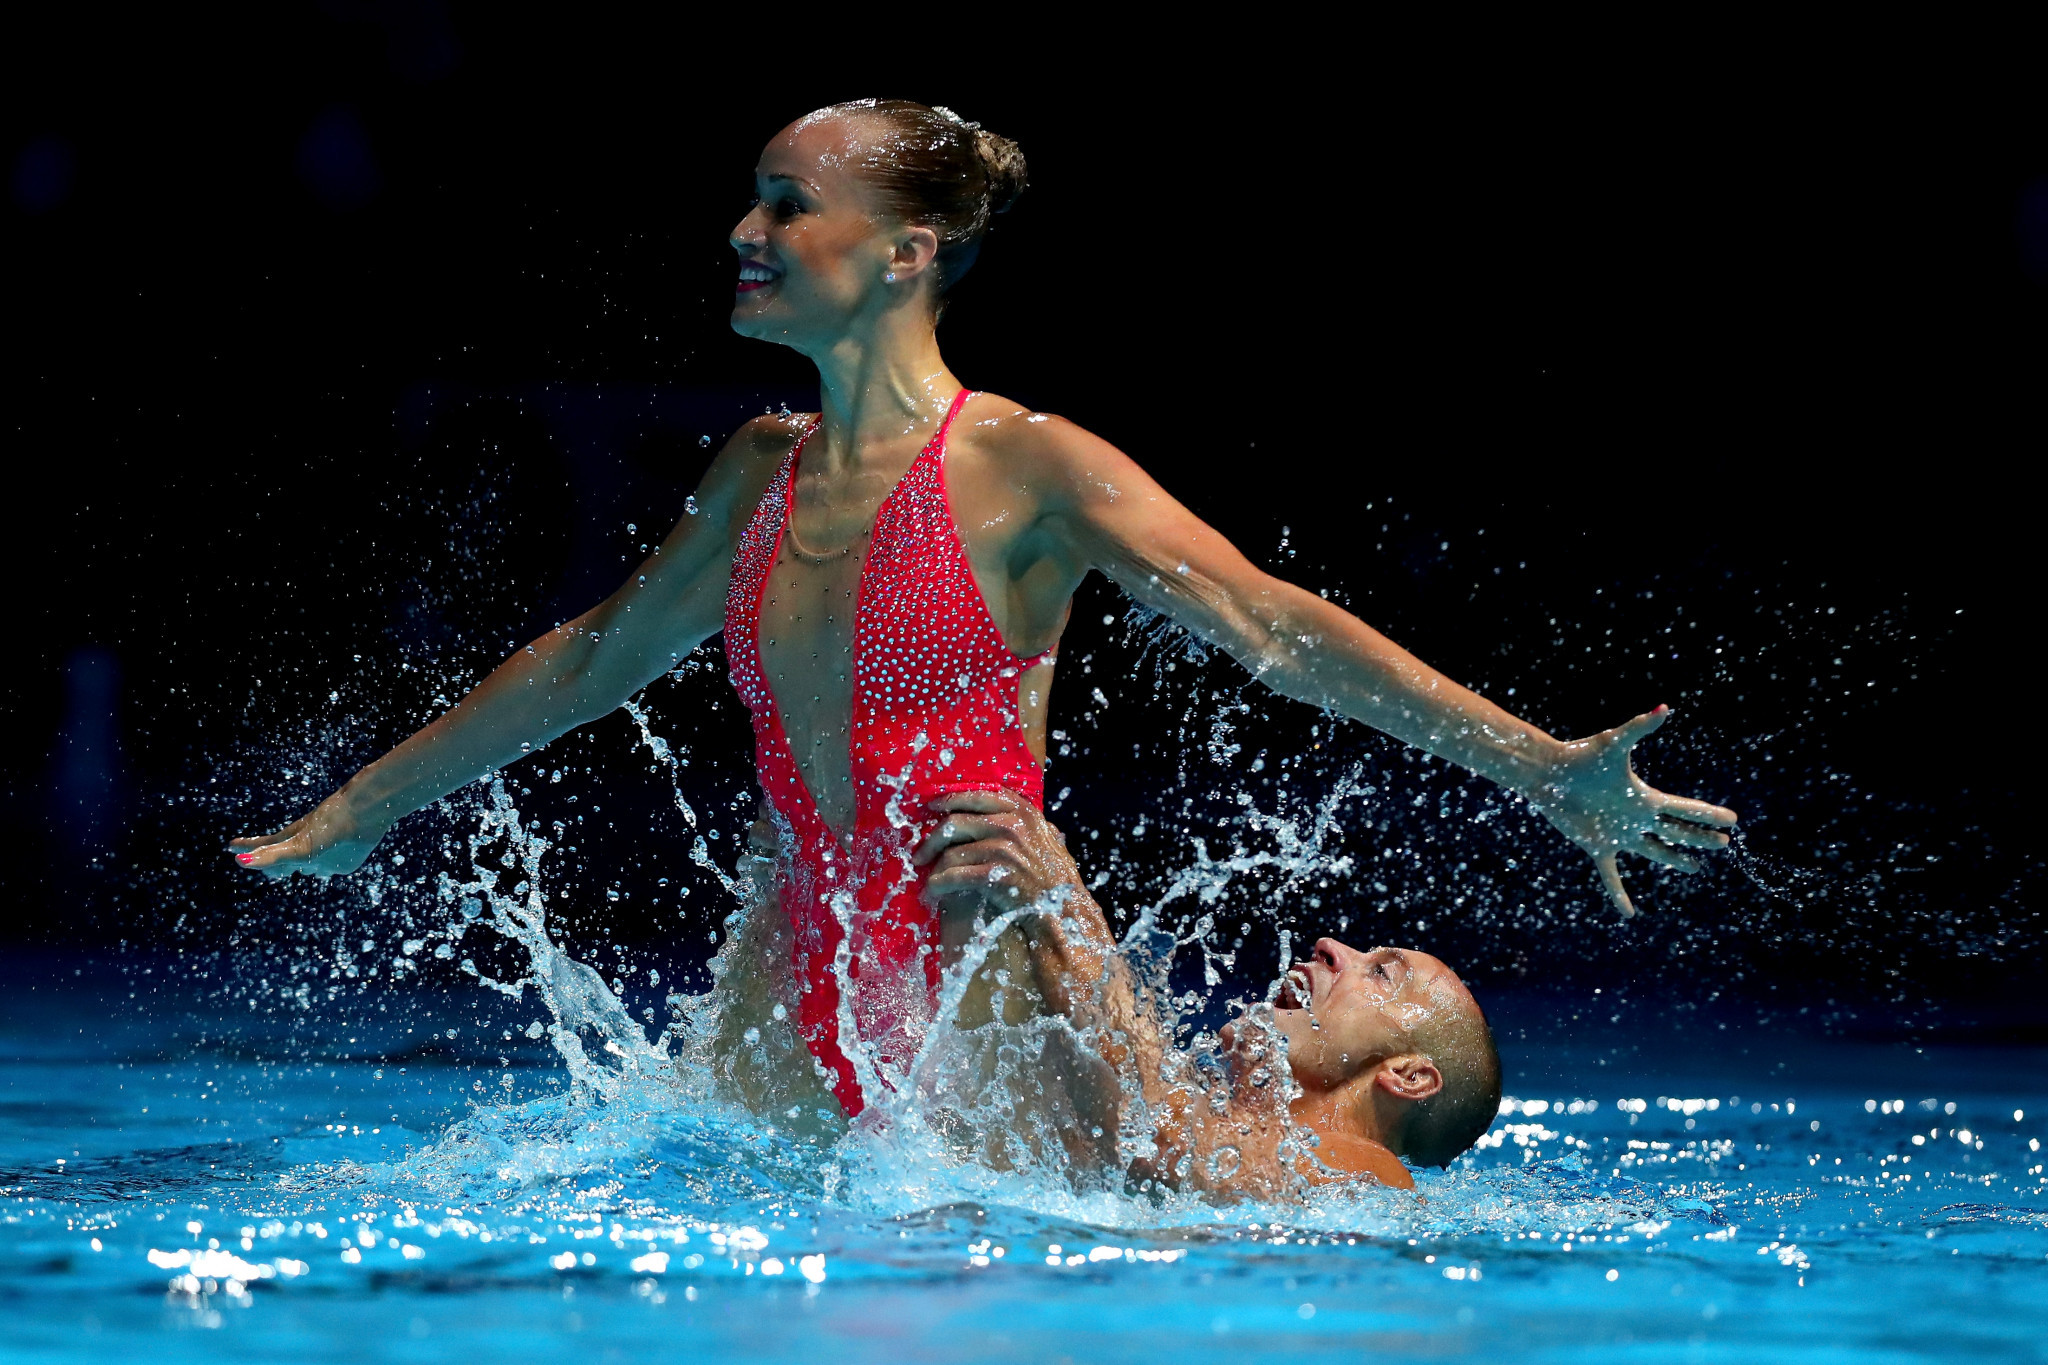 USA Artistic Swimming to broadcast two-day virtual competition